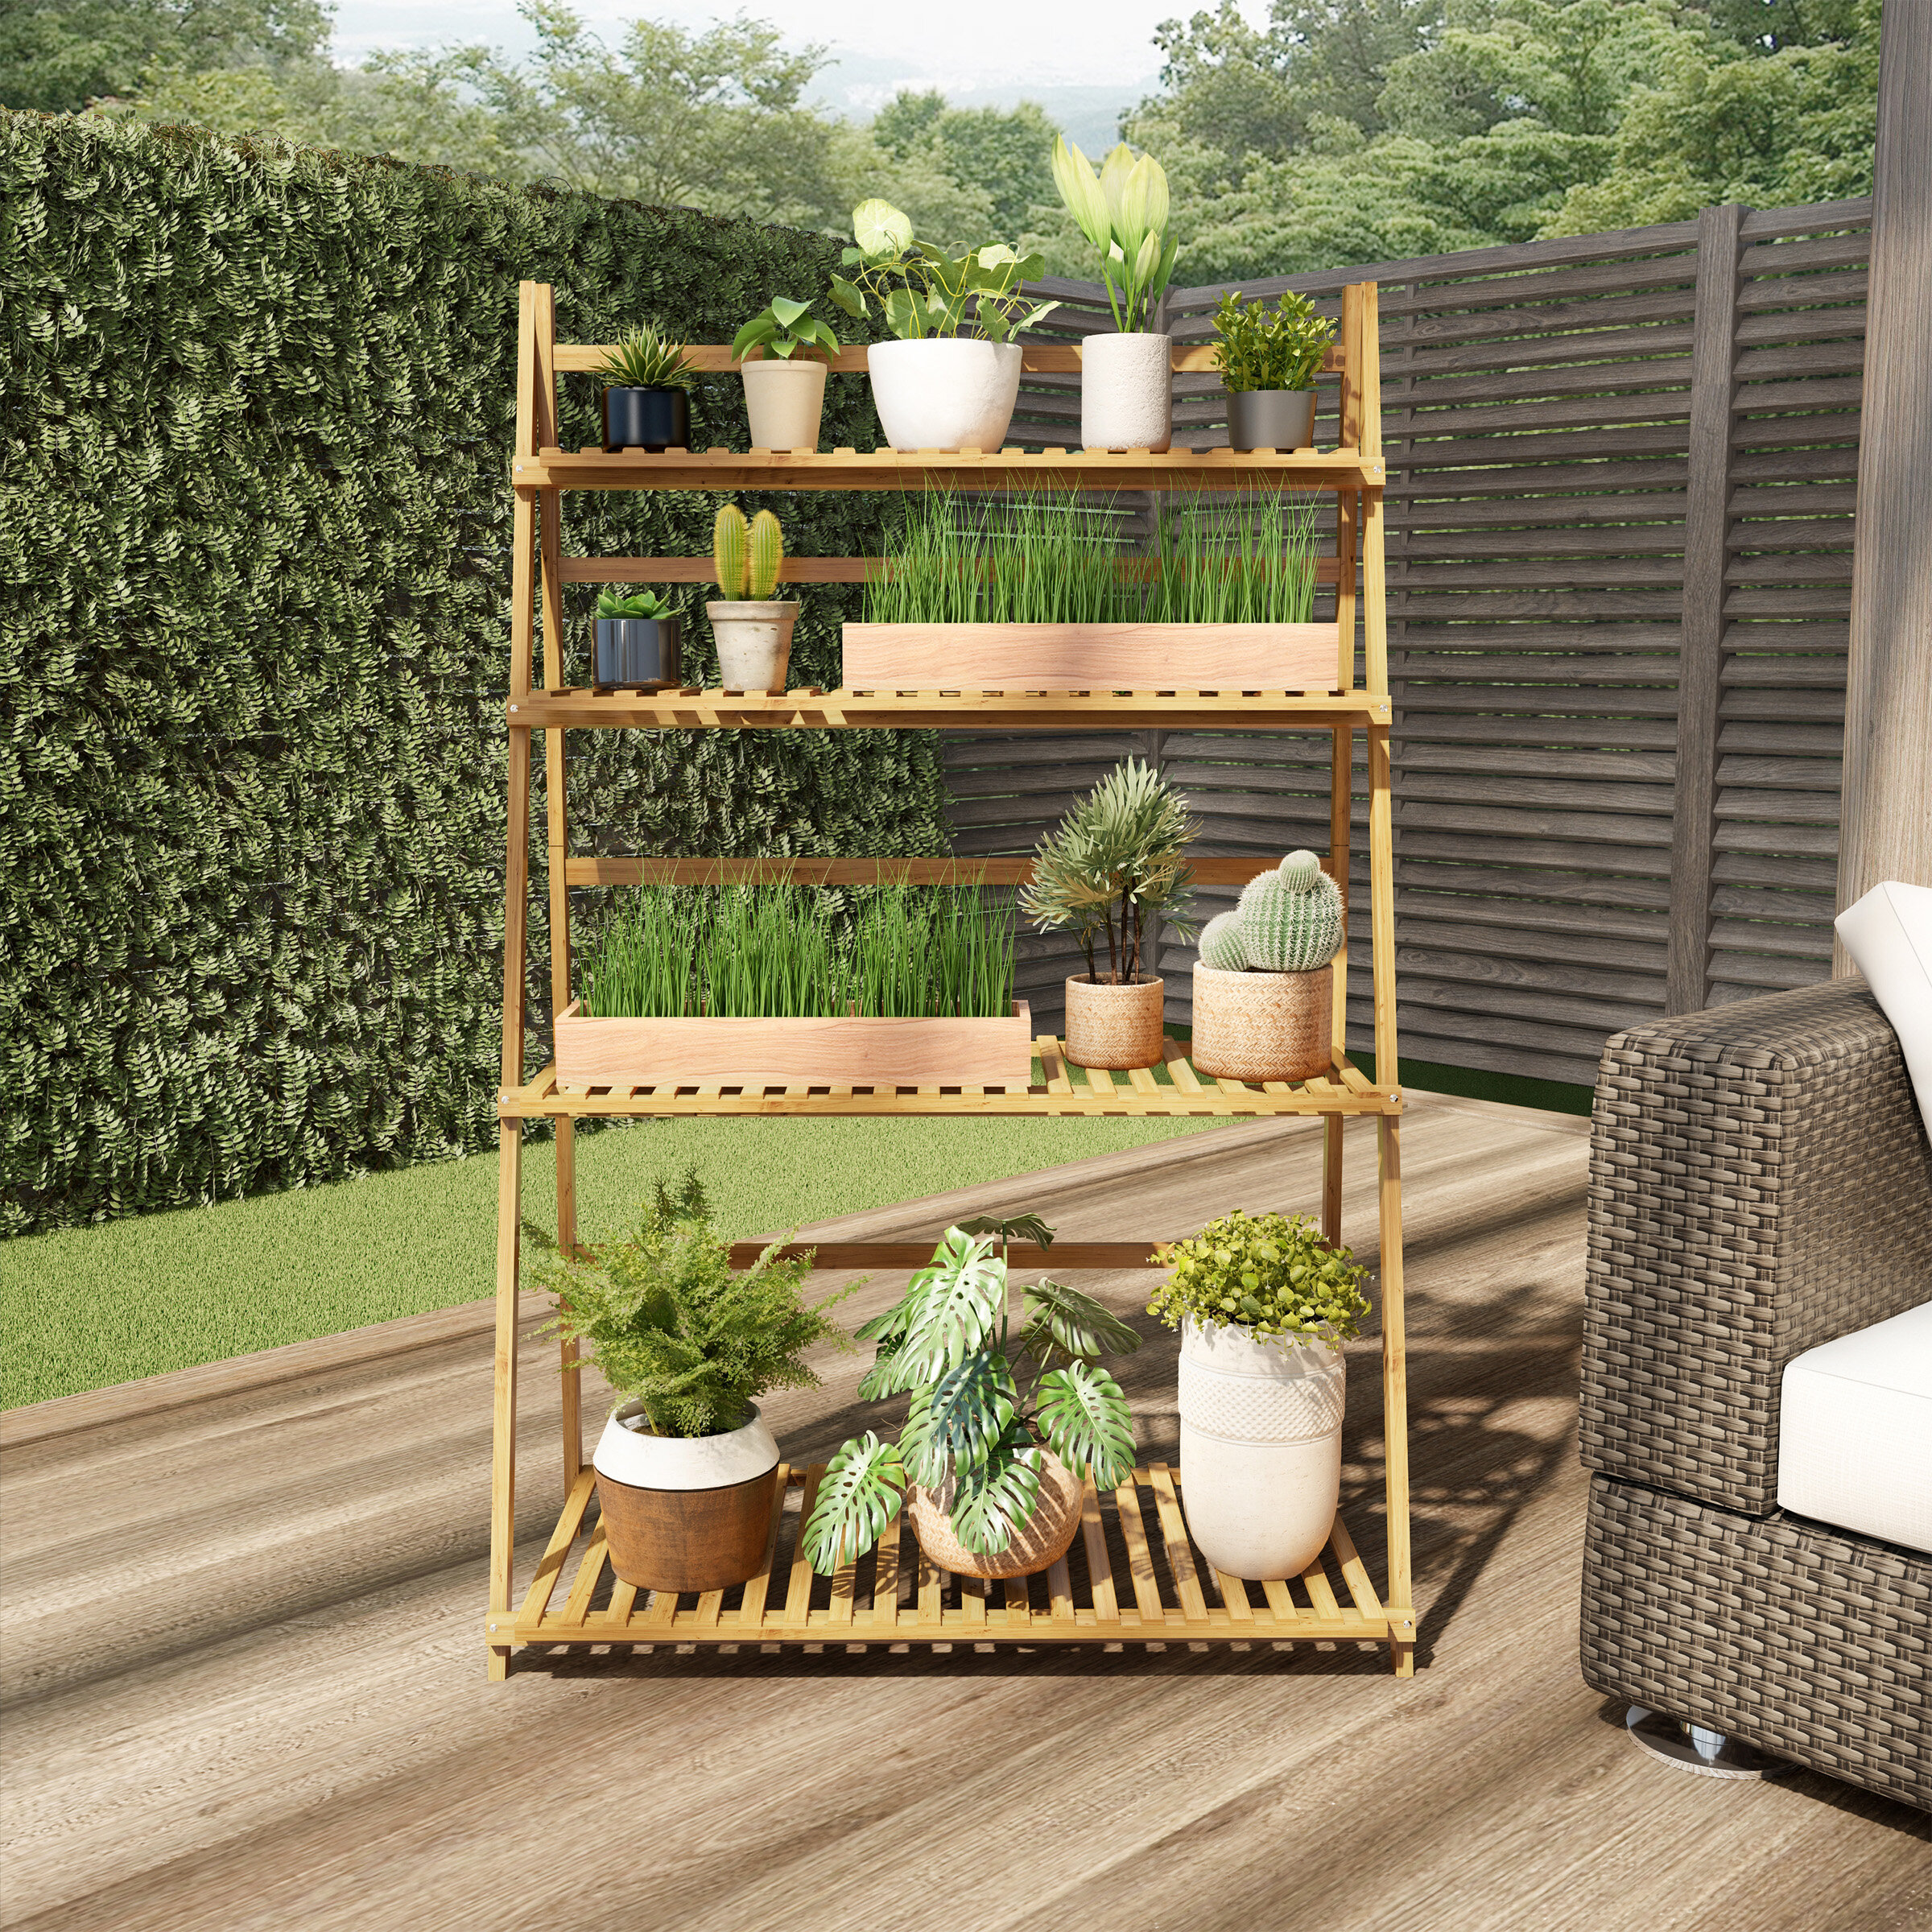 Symple Stuff Yvaine Rectangular Multi Tiered Plant Stand Reviews Wayfair